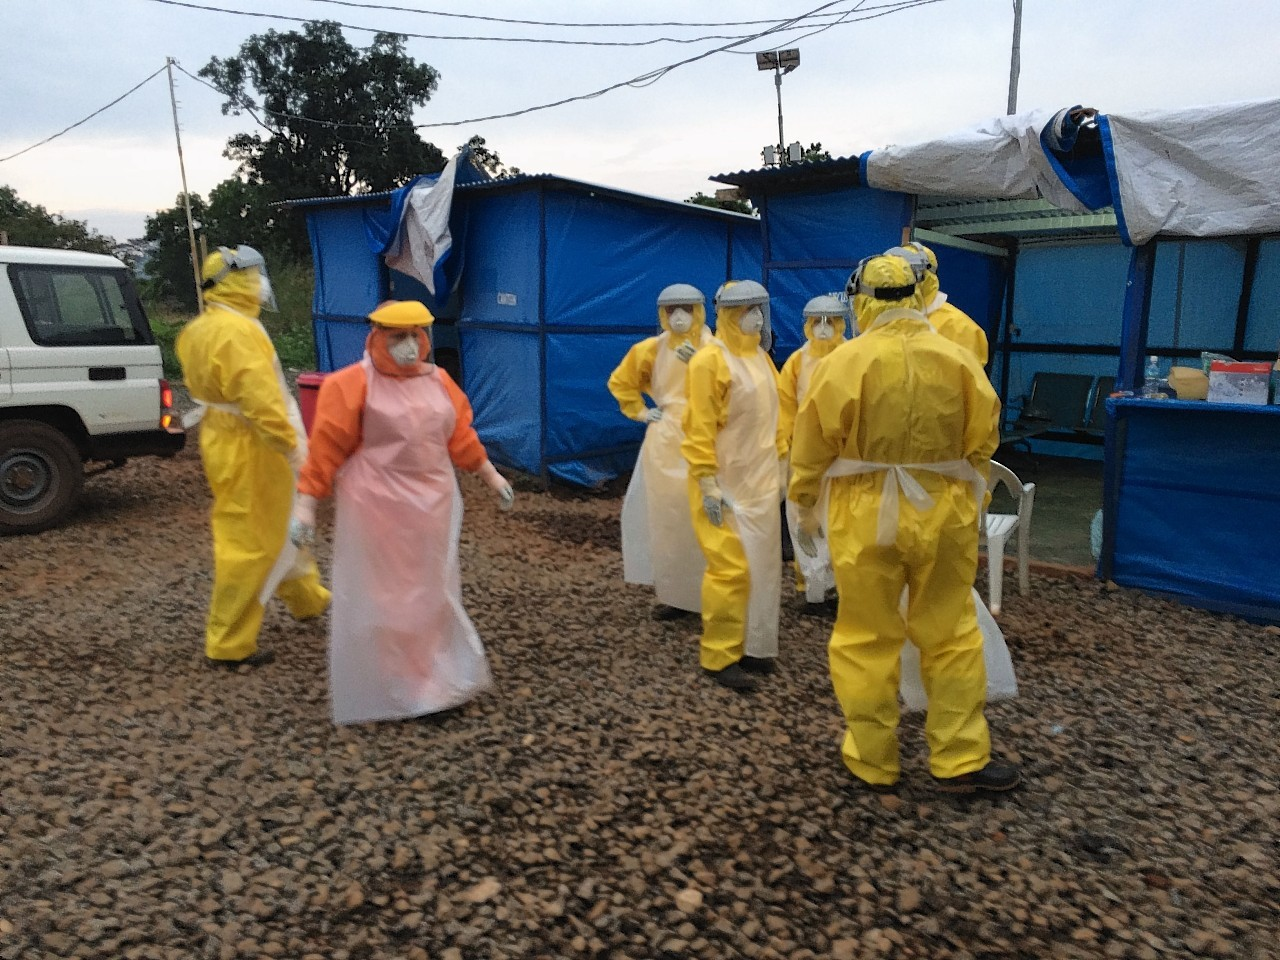 Dr Chris Mair volunteered to fight Ebola in West Africa